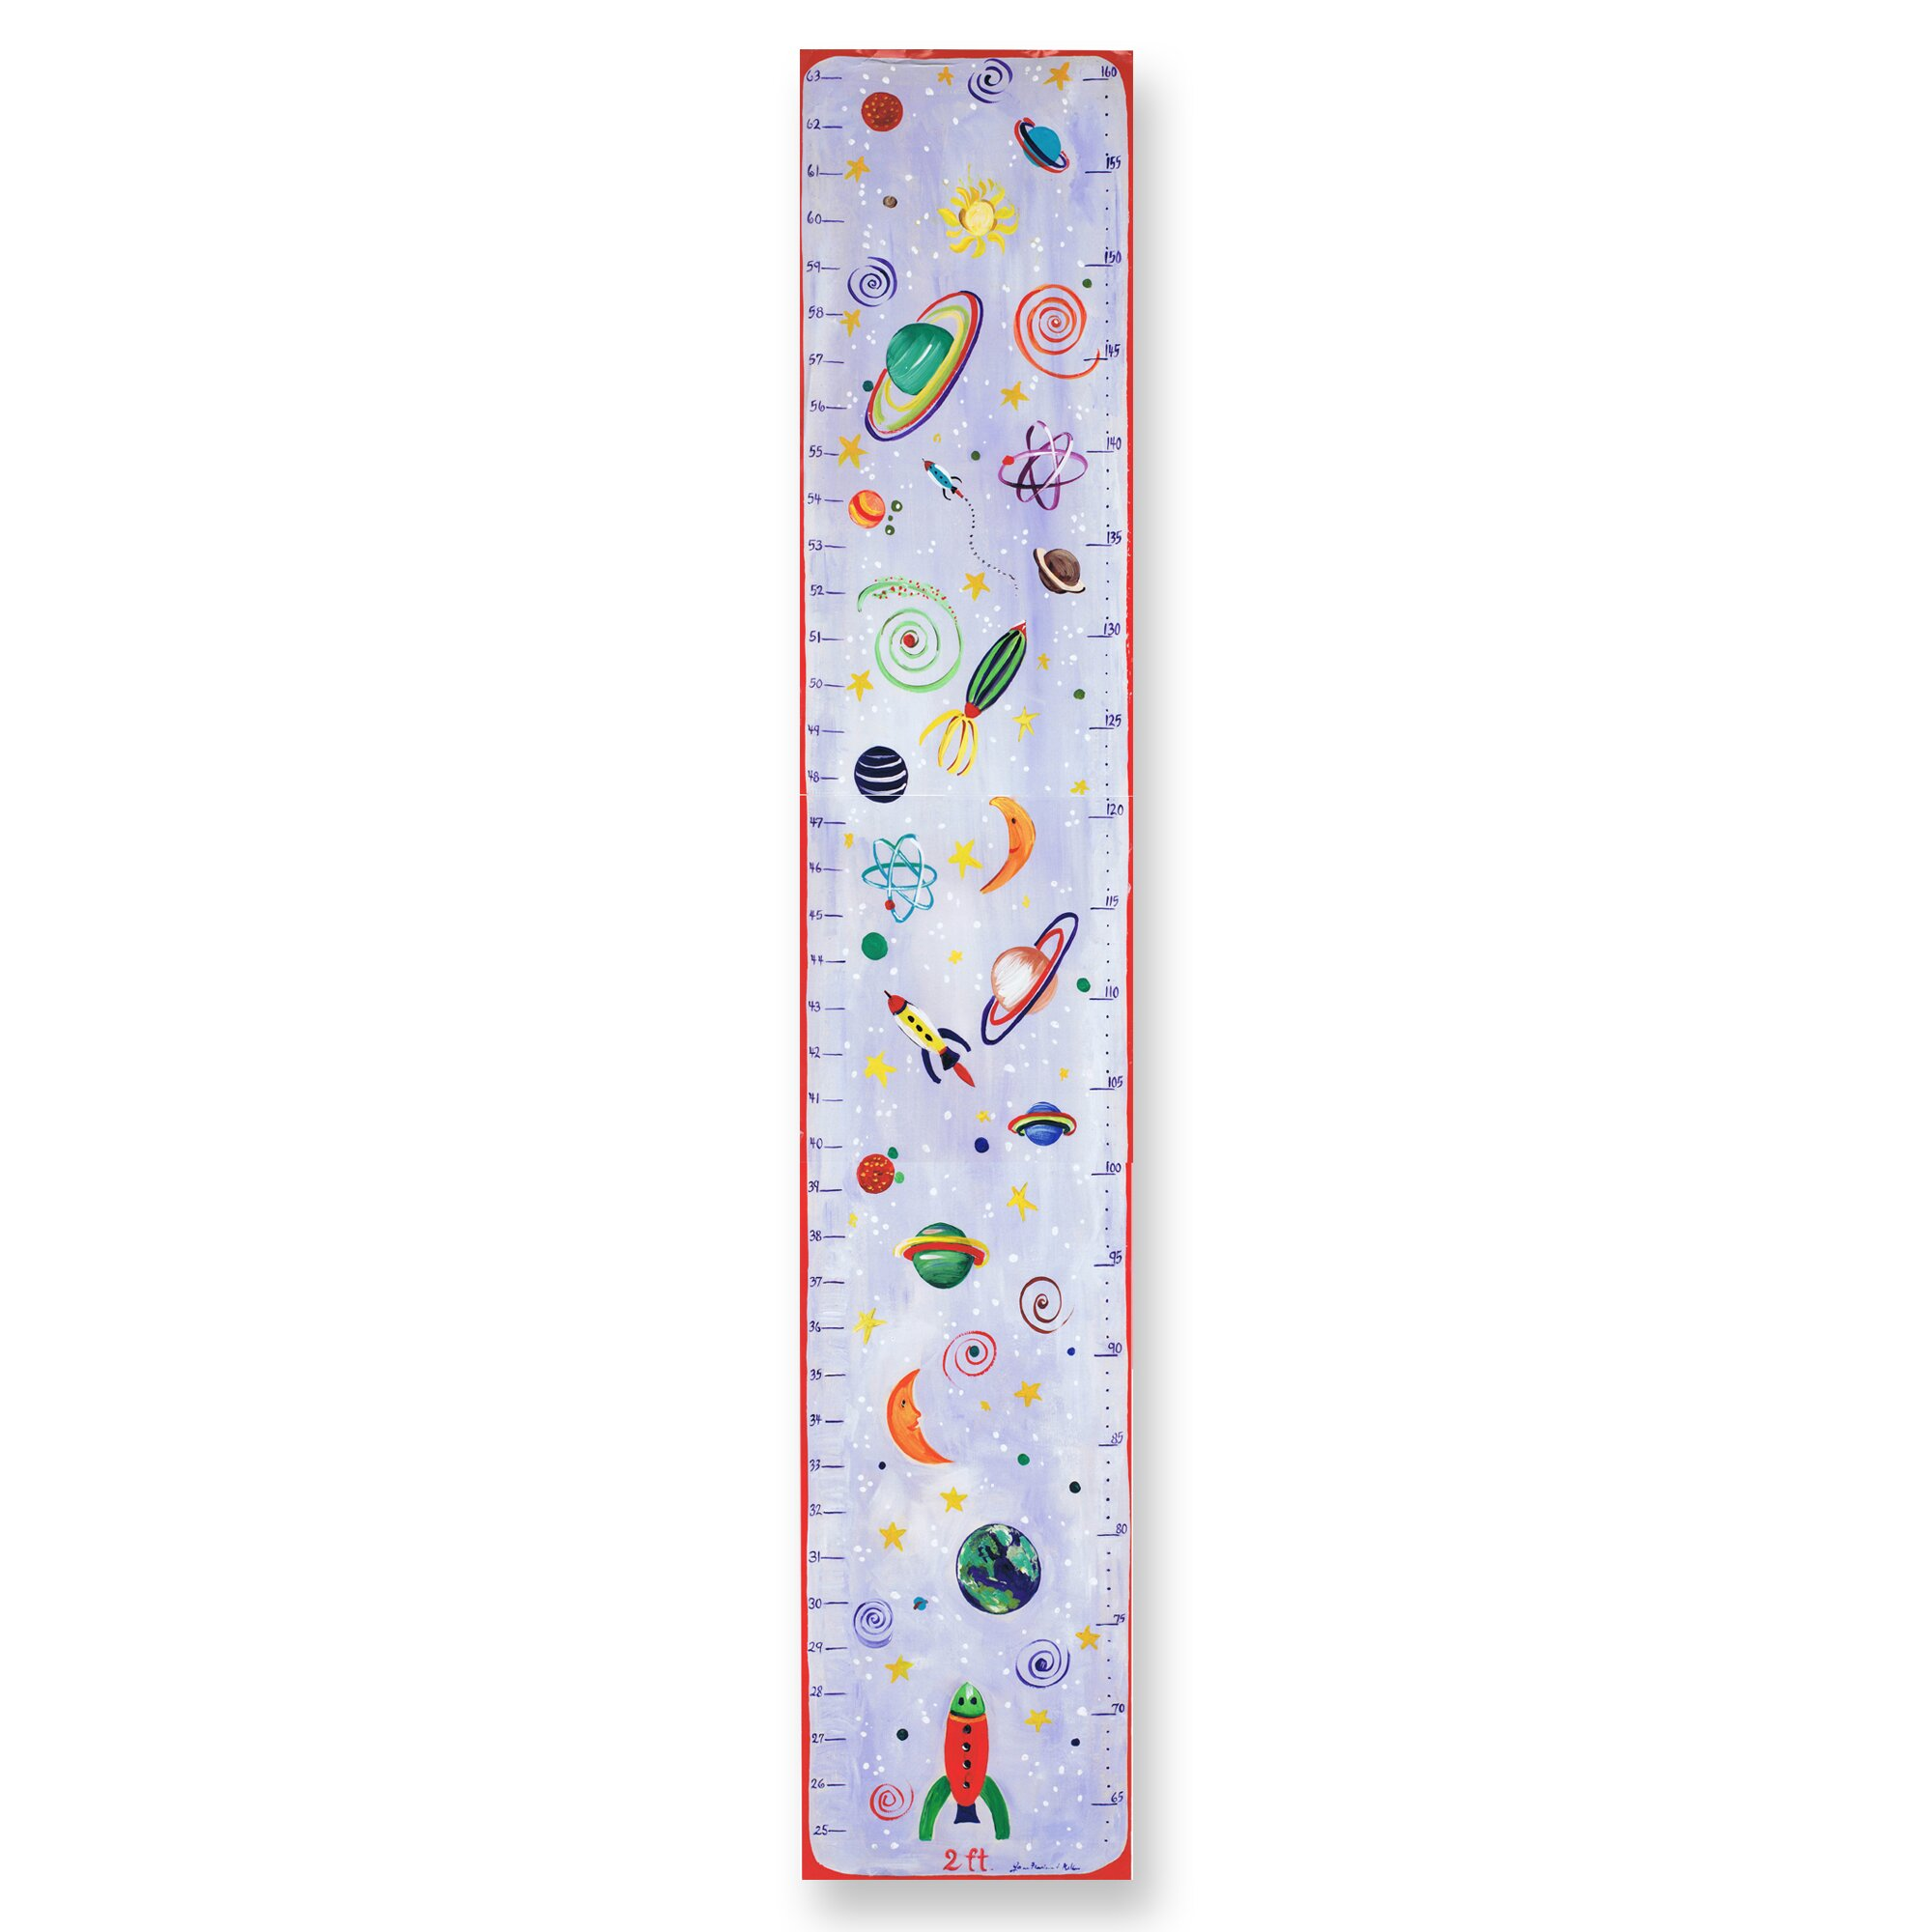 The kids room celestial growth chart wayfair for Growth chart for kids room